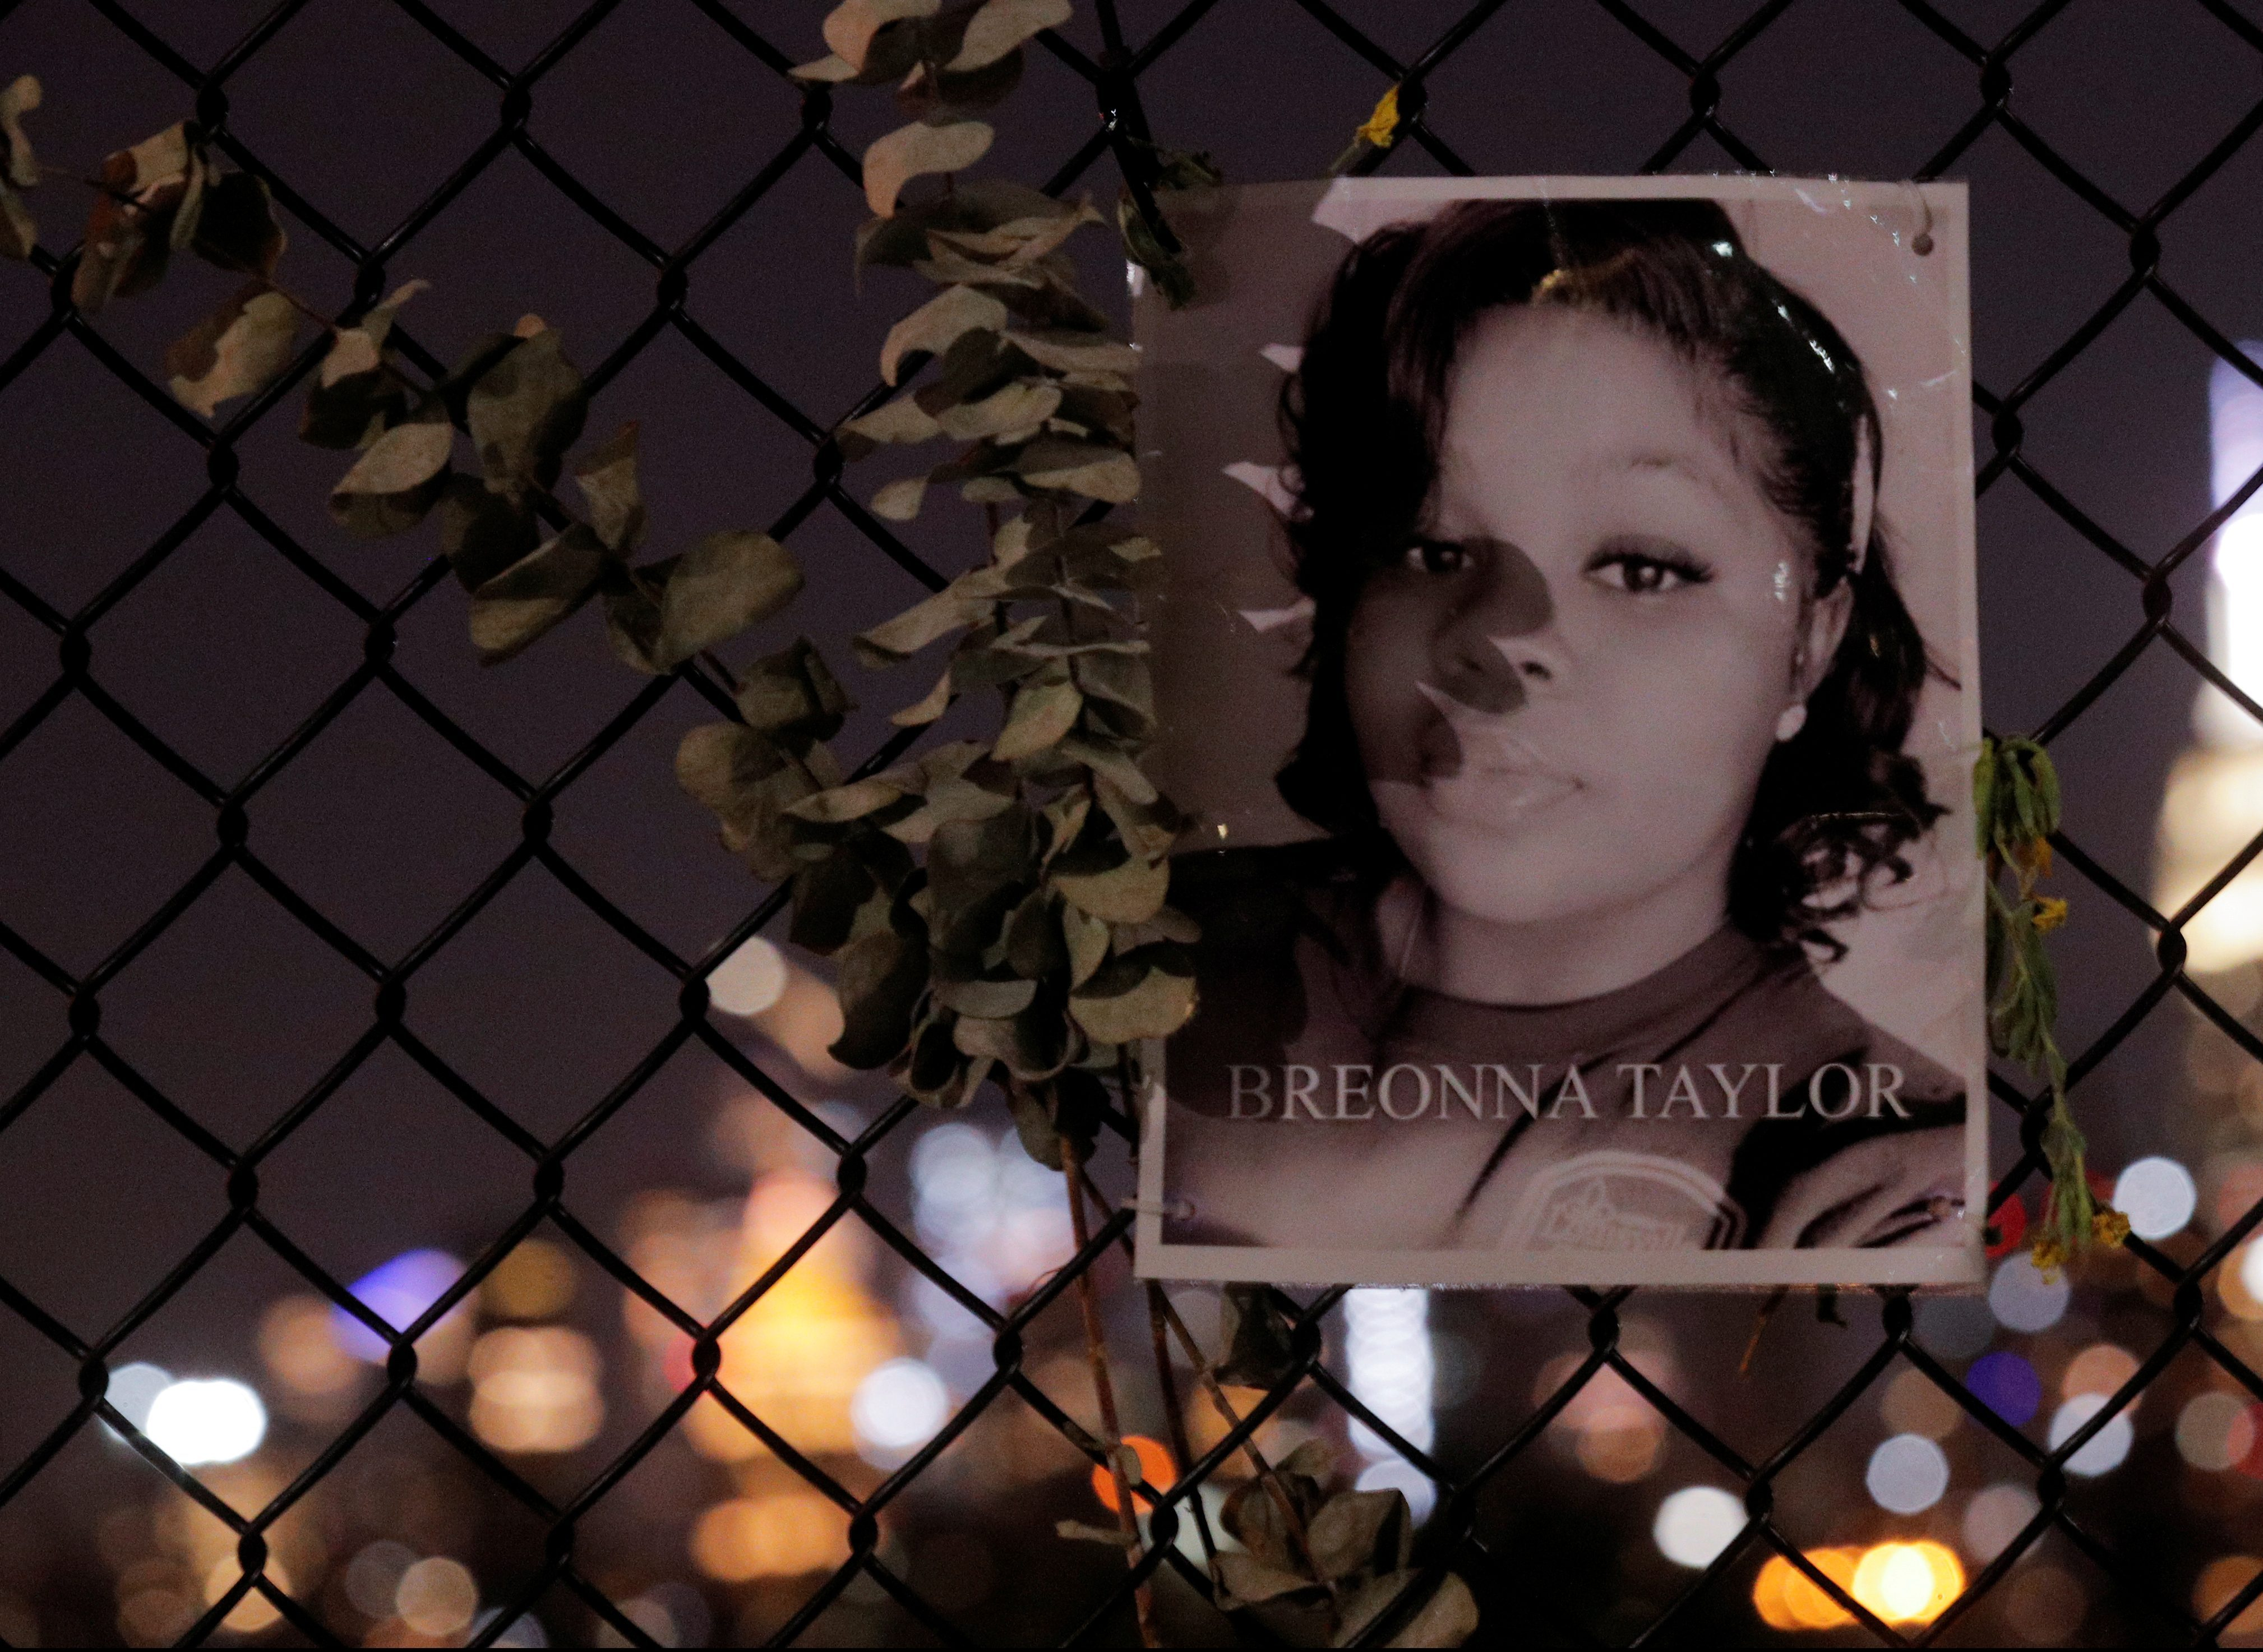 Breonna Taylor Police Brutality And The Importance Of Sayhername